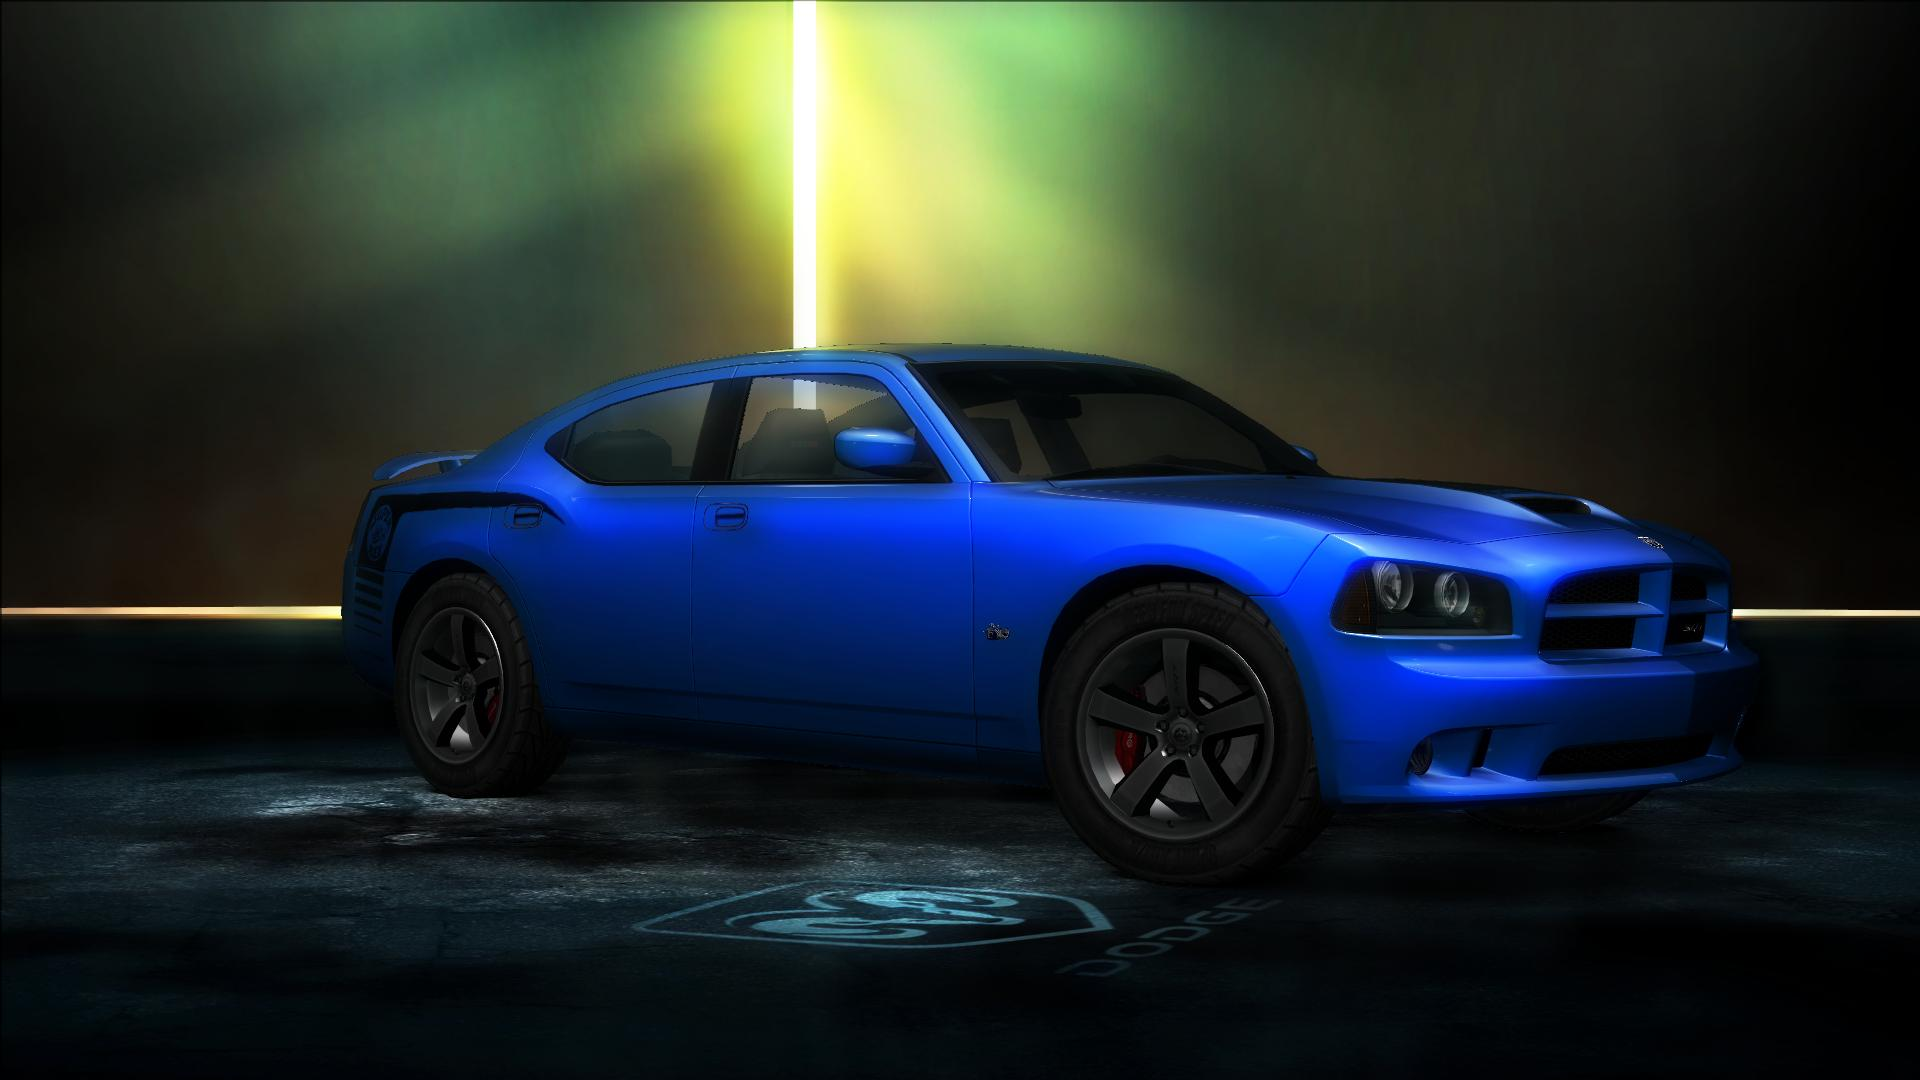 Dodge Charger SRT8 Super Bee (LX) | Need for Speed Wiki | FANDOM ...